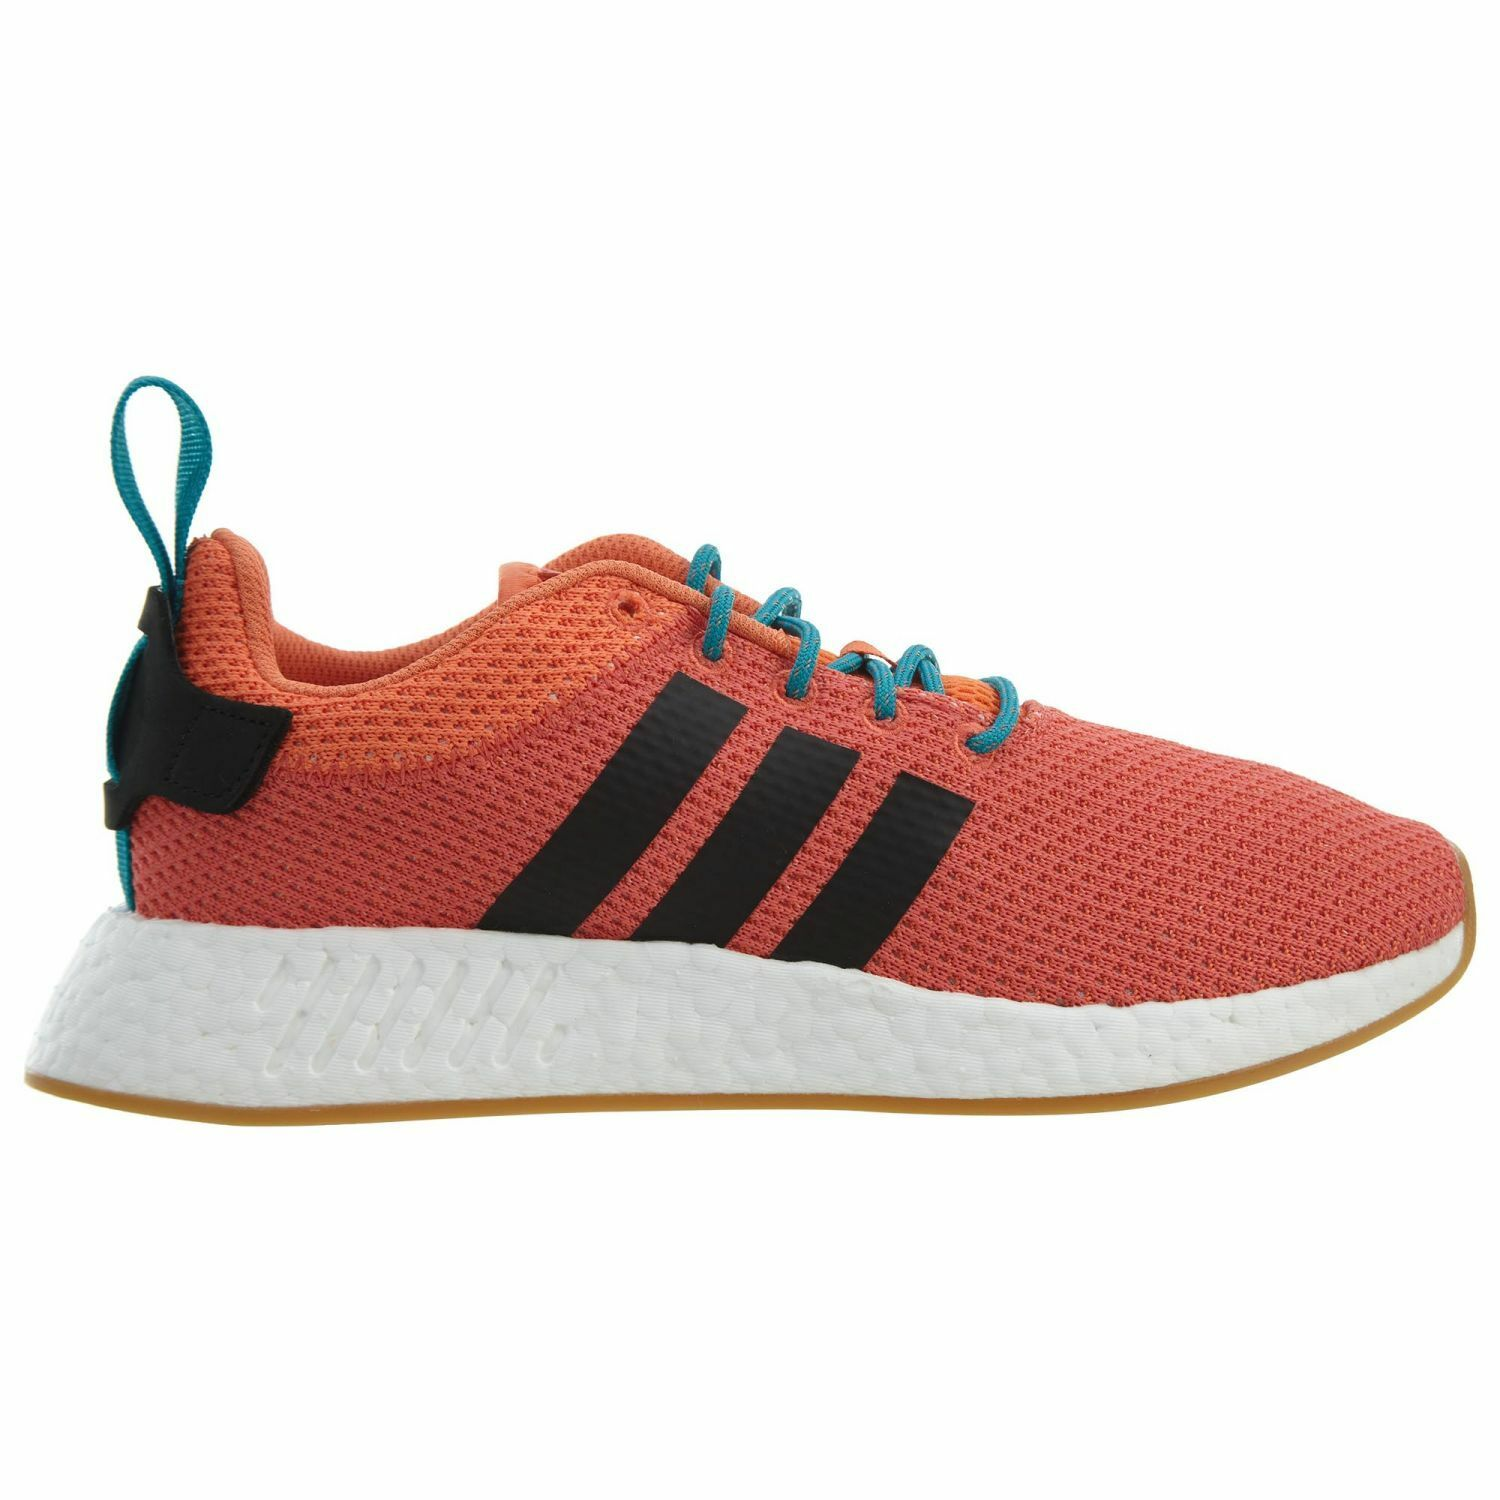 Adidas NMD_R2 Summer Mens CQ3081 Trace Orange Knit Boost Running Shoes Size 9